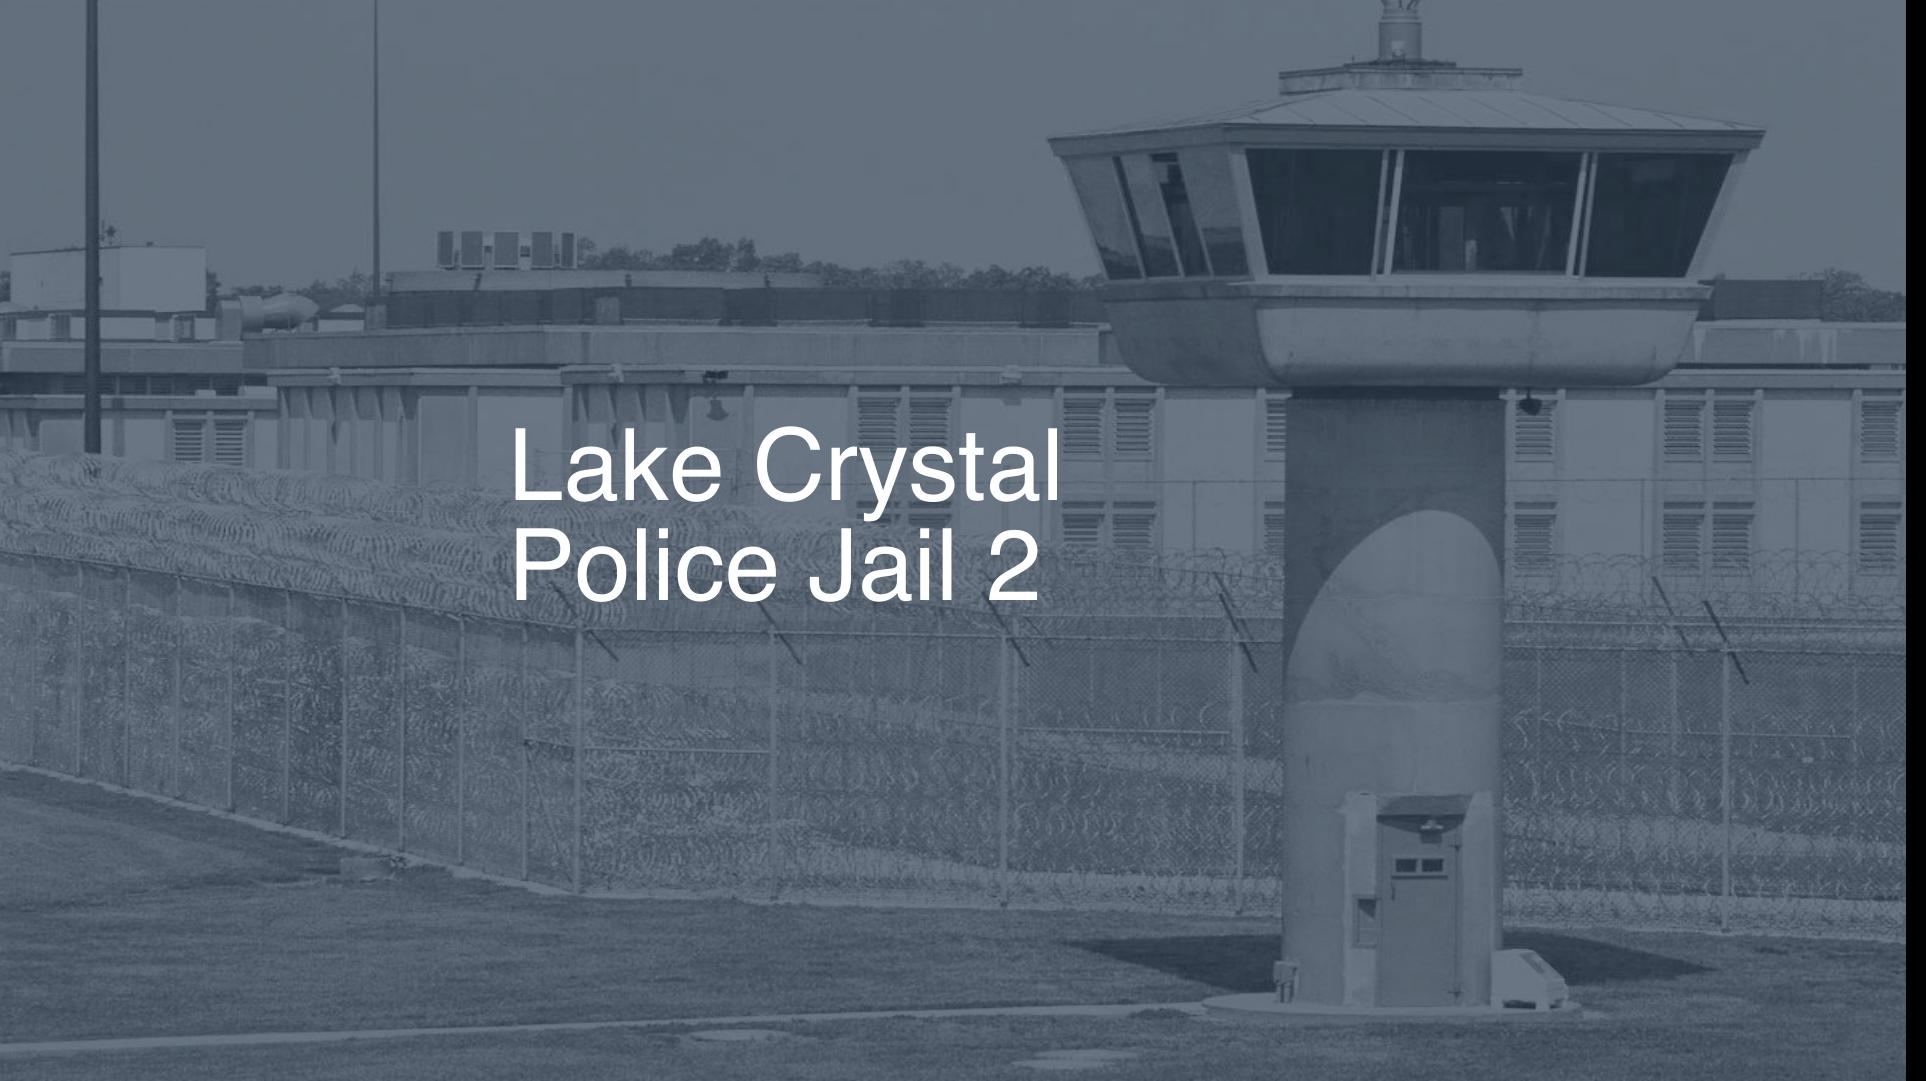 Lake Crystal Police Jail correctional facility picture